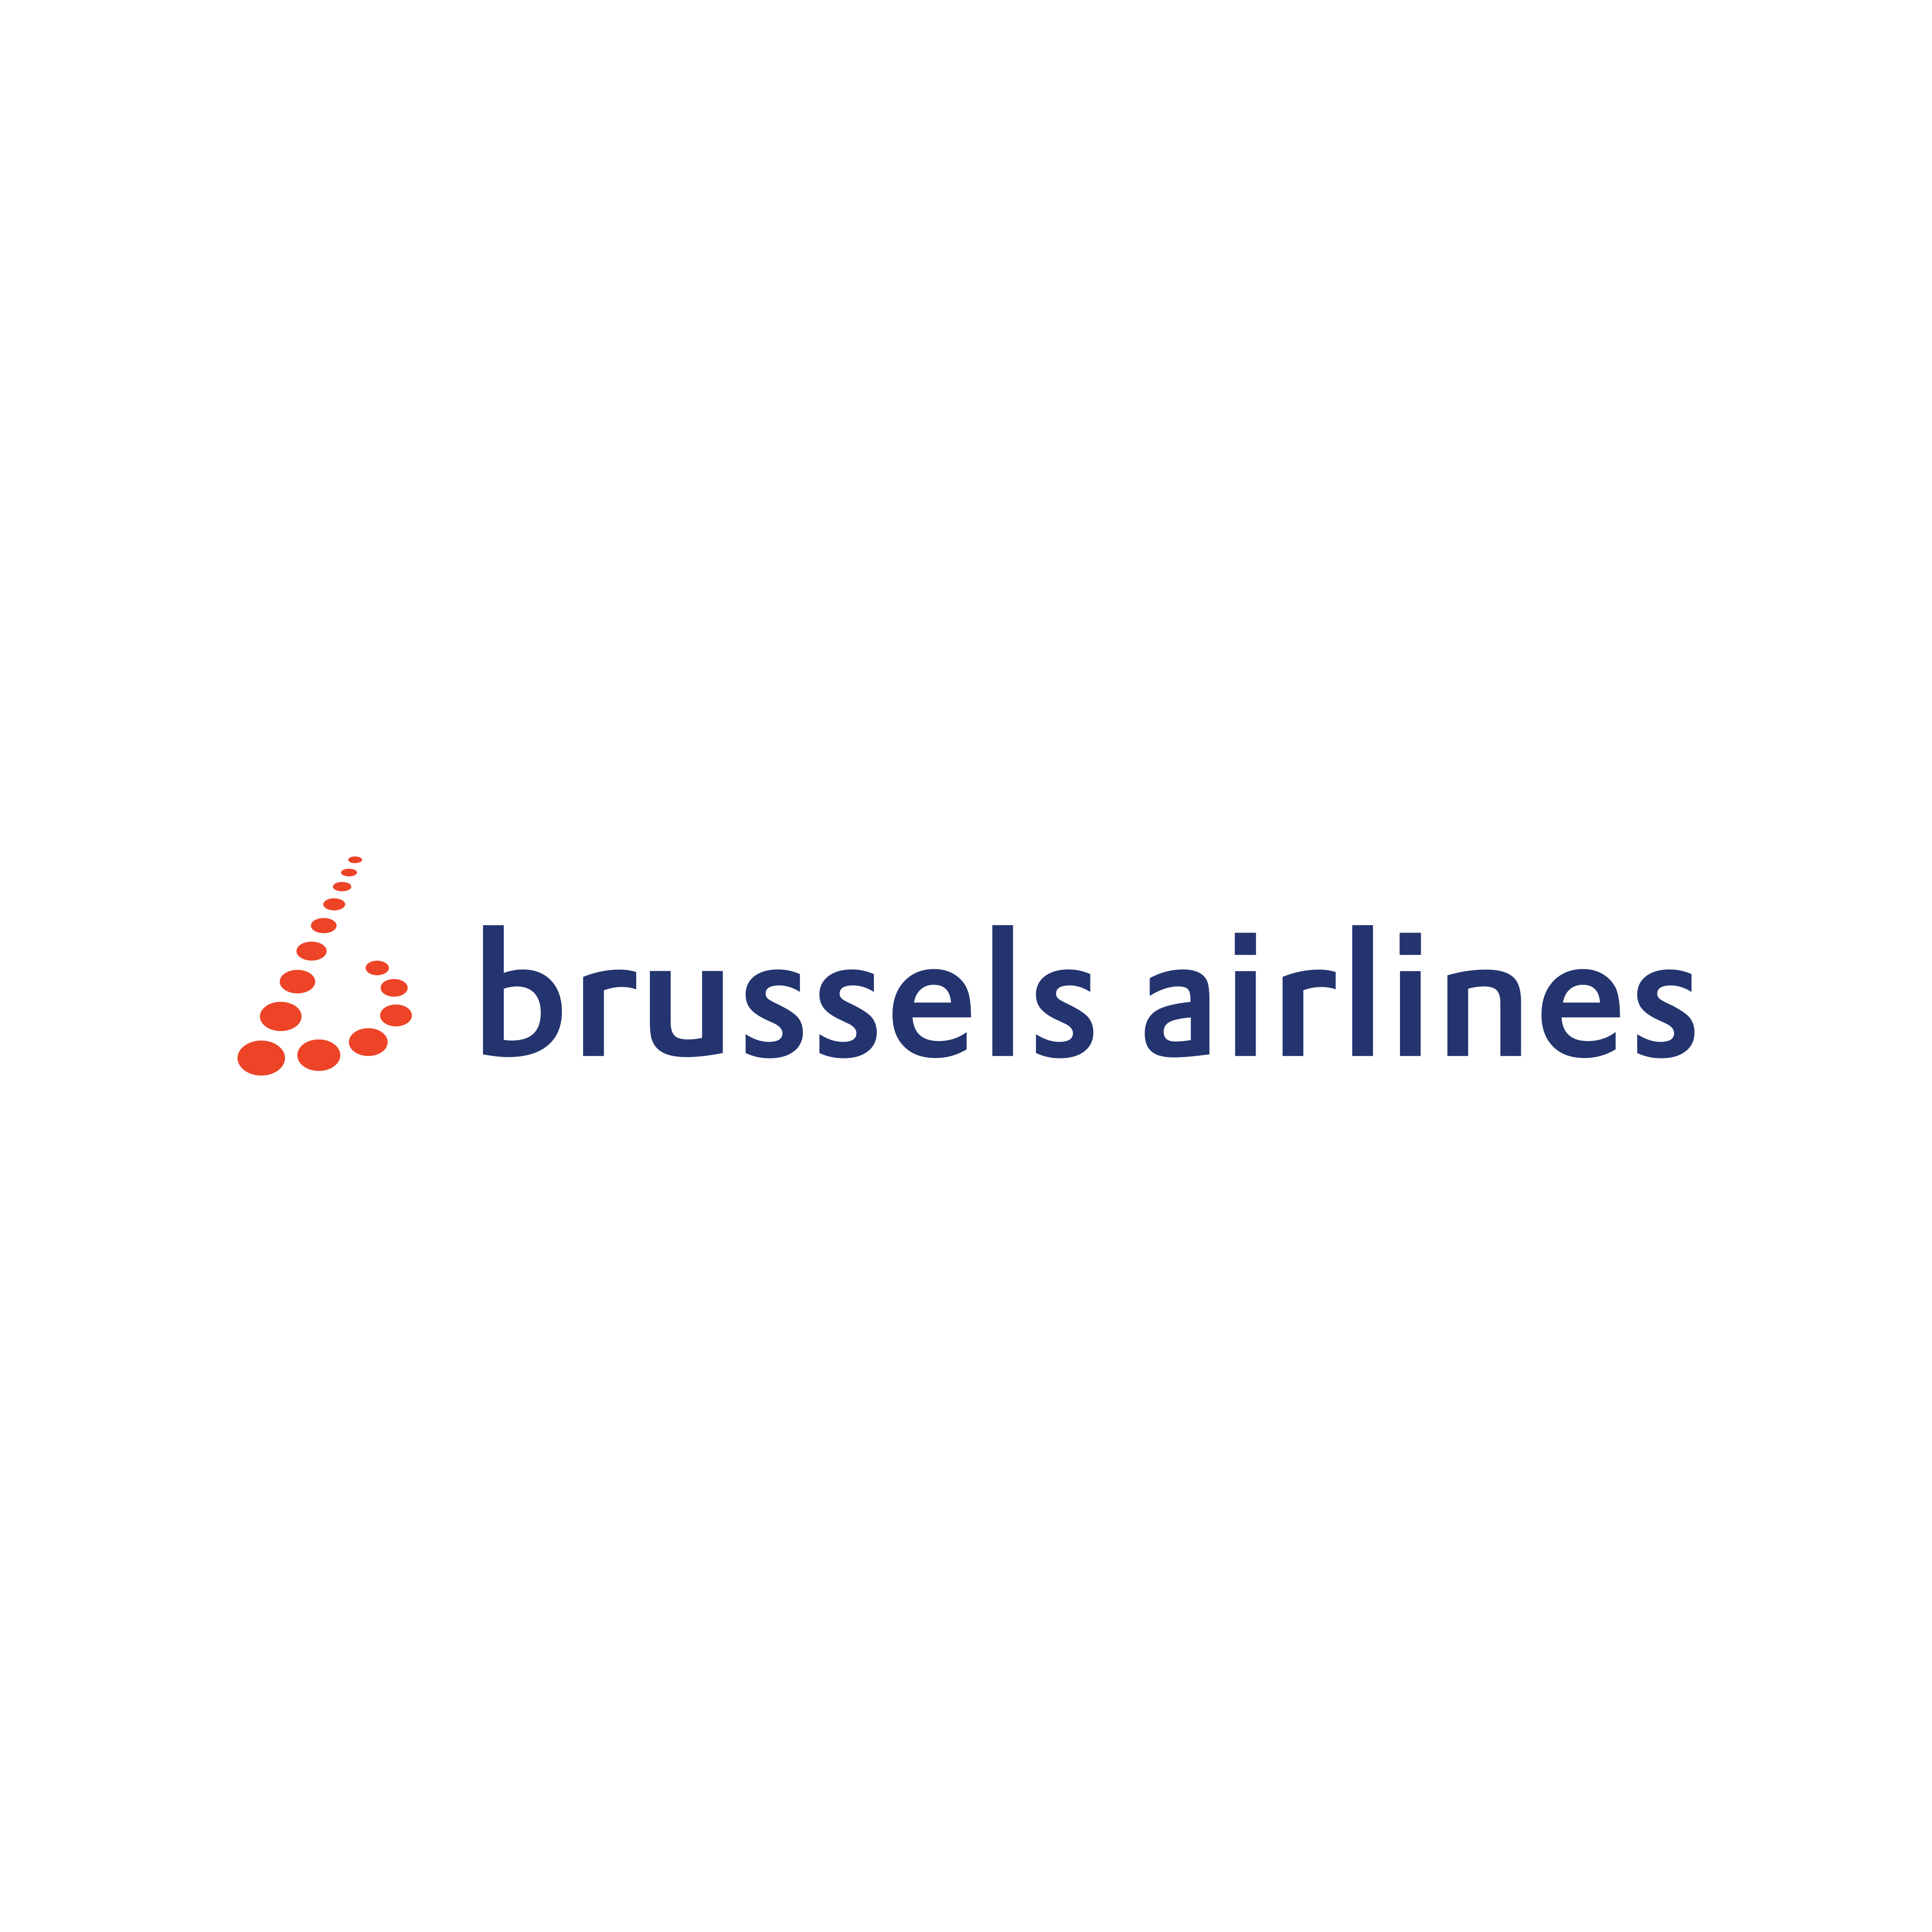 brussels airlines logo 0 - Brussels Airlines Logo